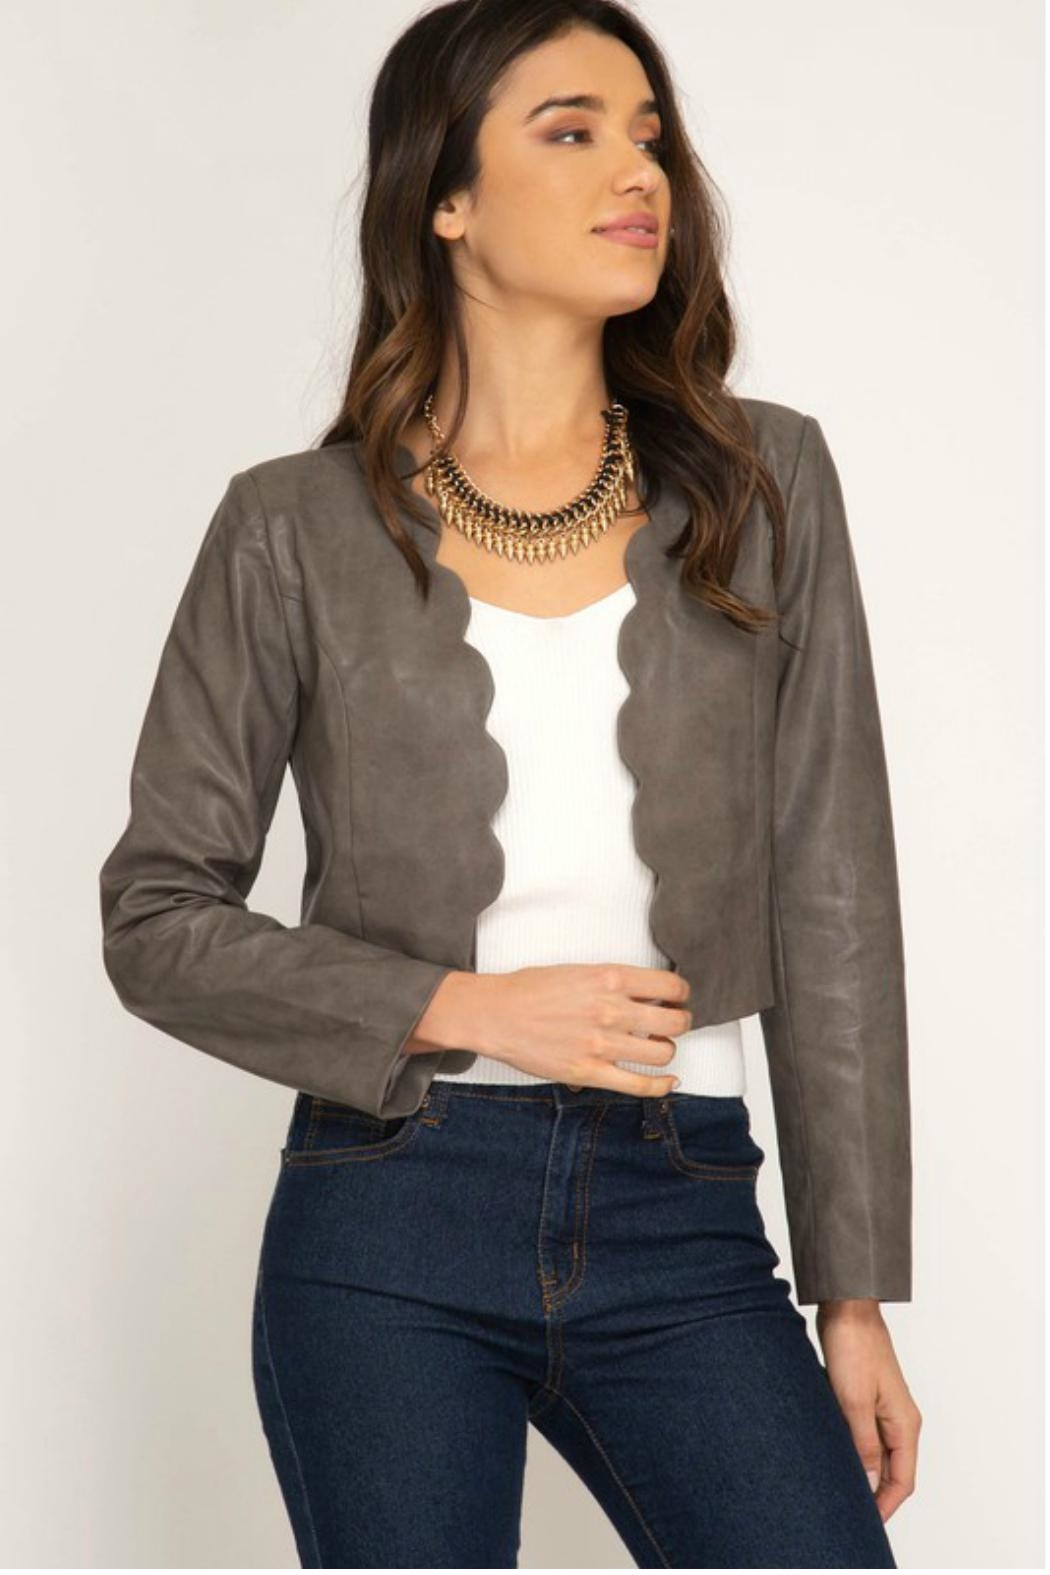 c6bbf7b42e233 Towne Scalloped Leather Jacket from Long Island — Shoptiques